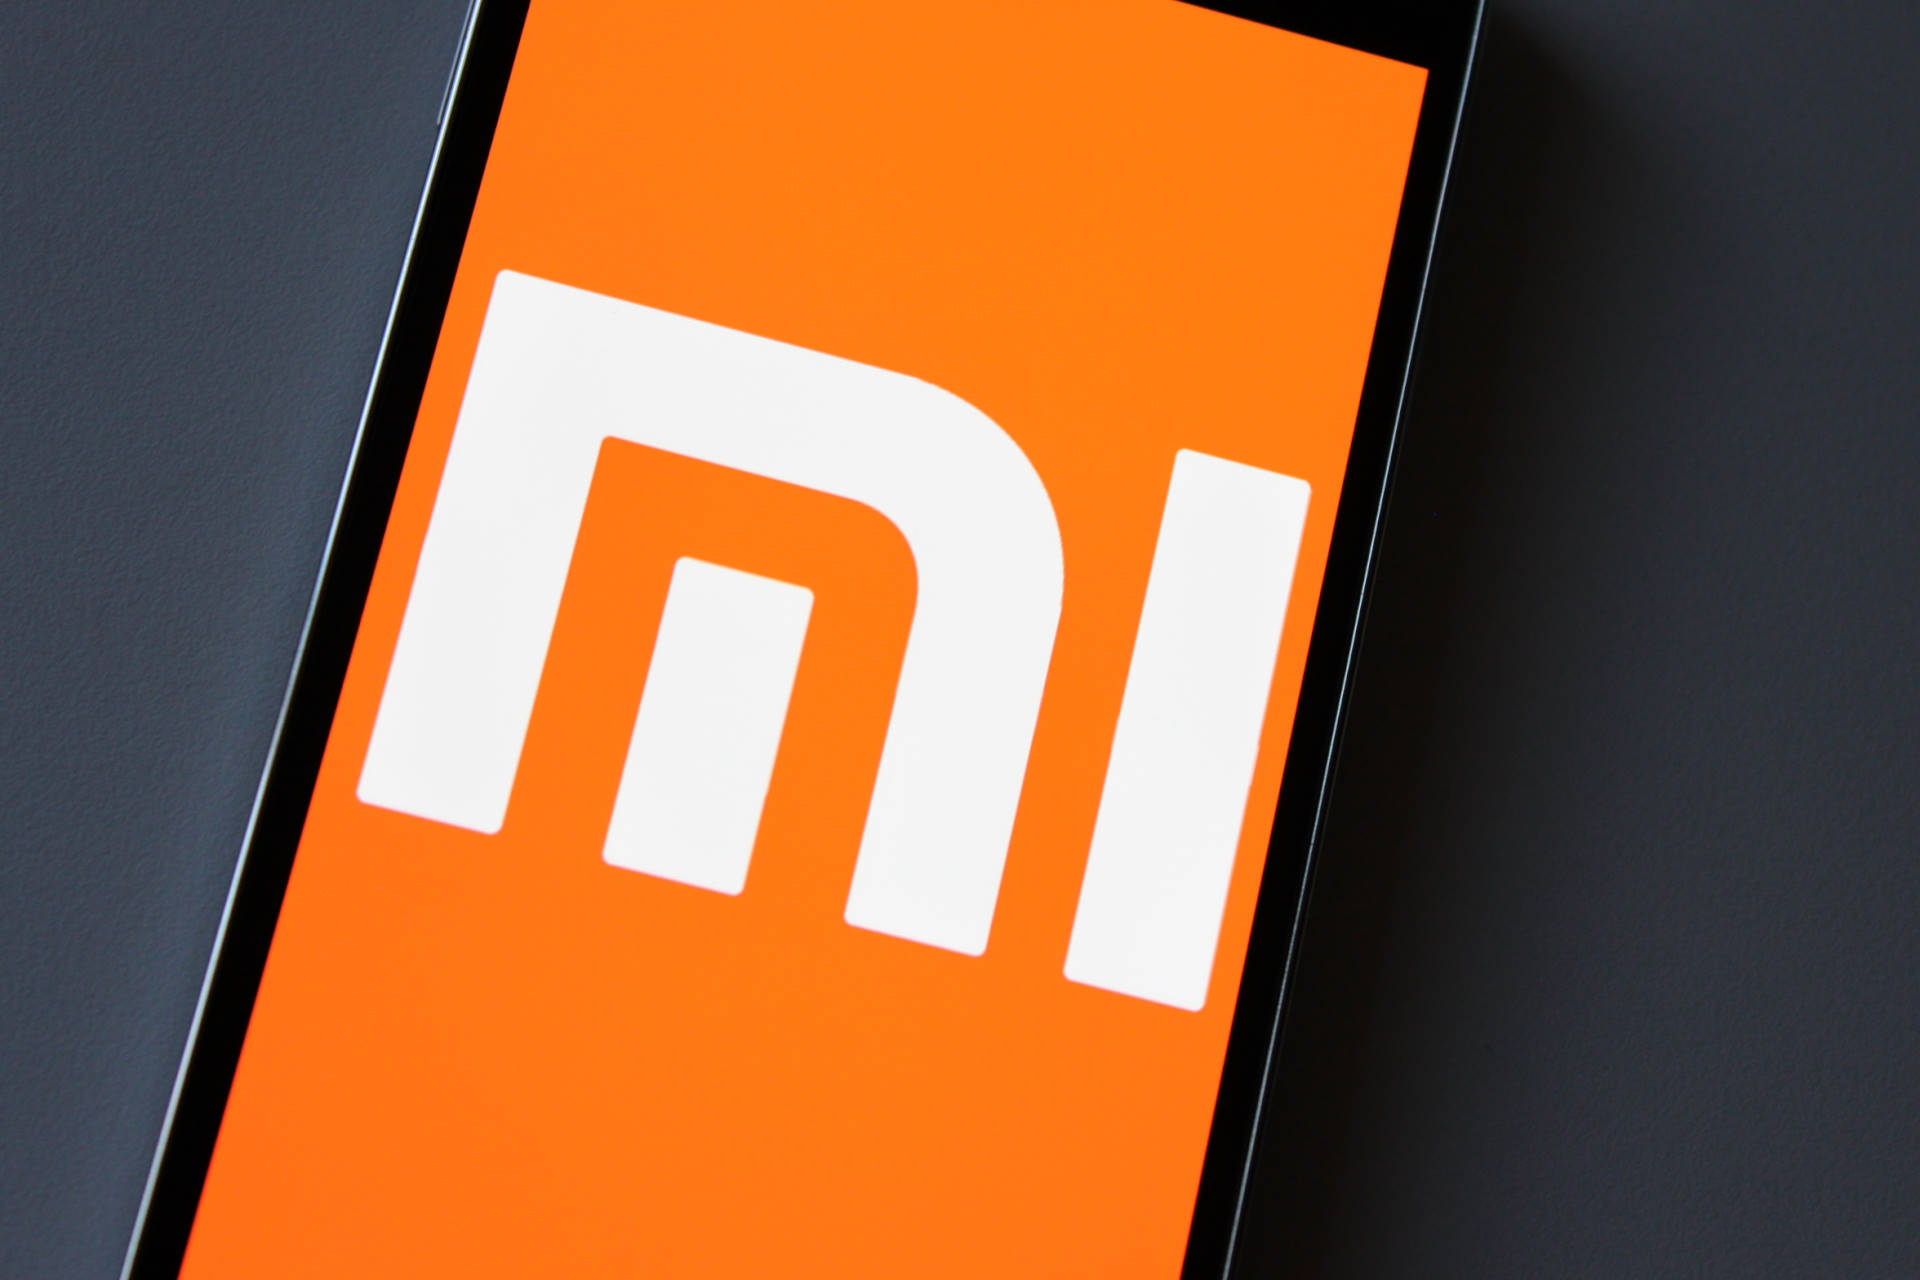 Xiaomi's smartphone sales are going down; Hugo Barra answers